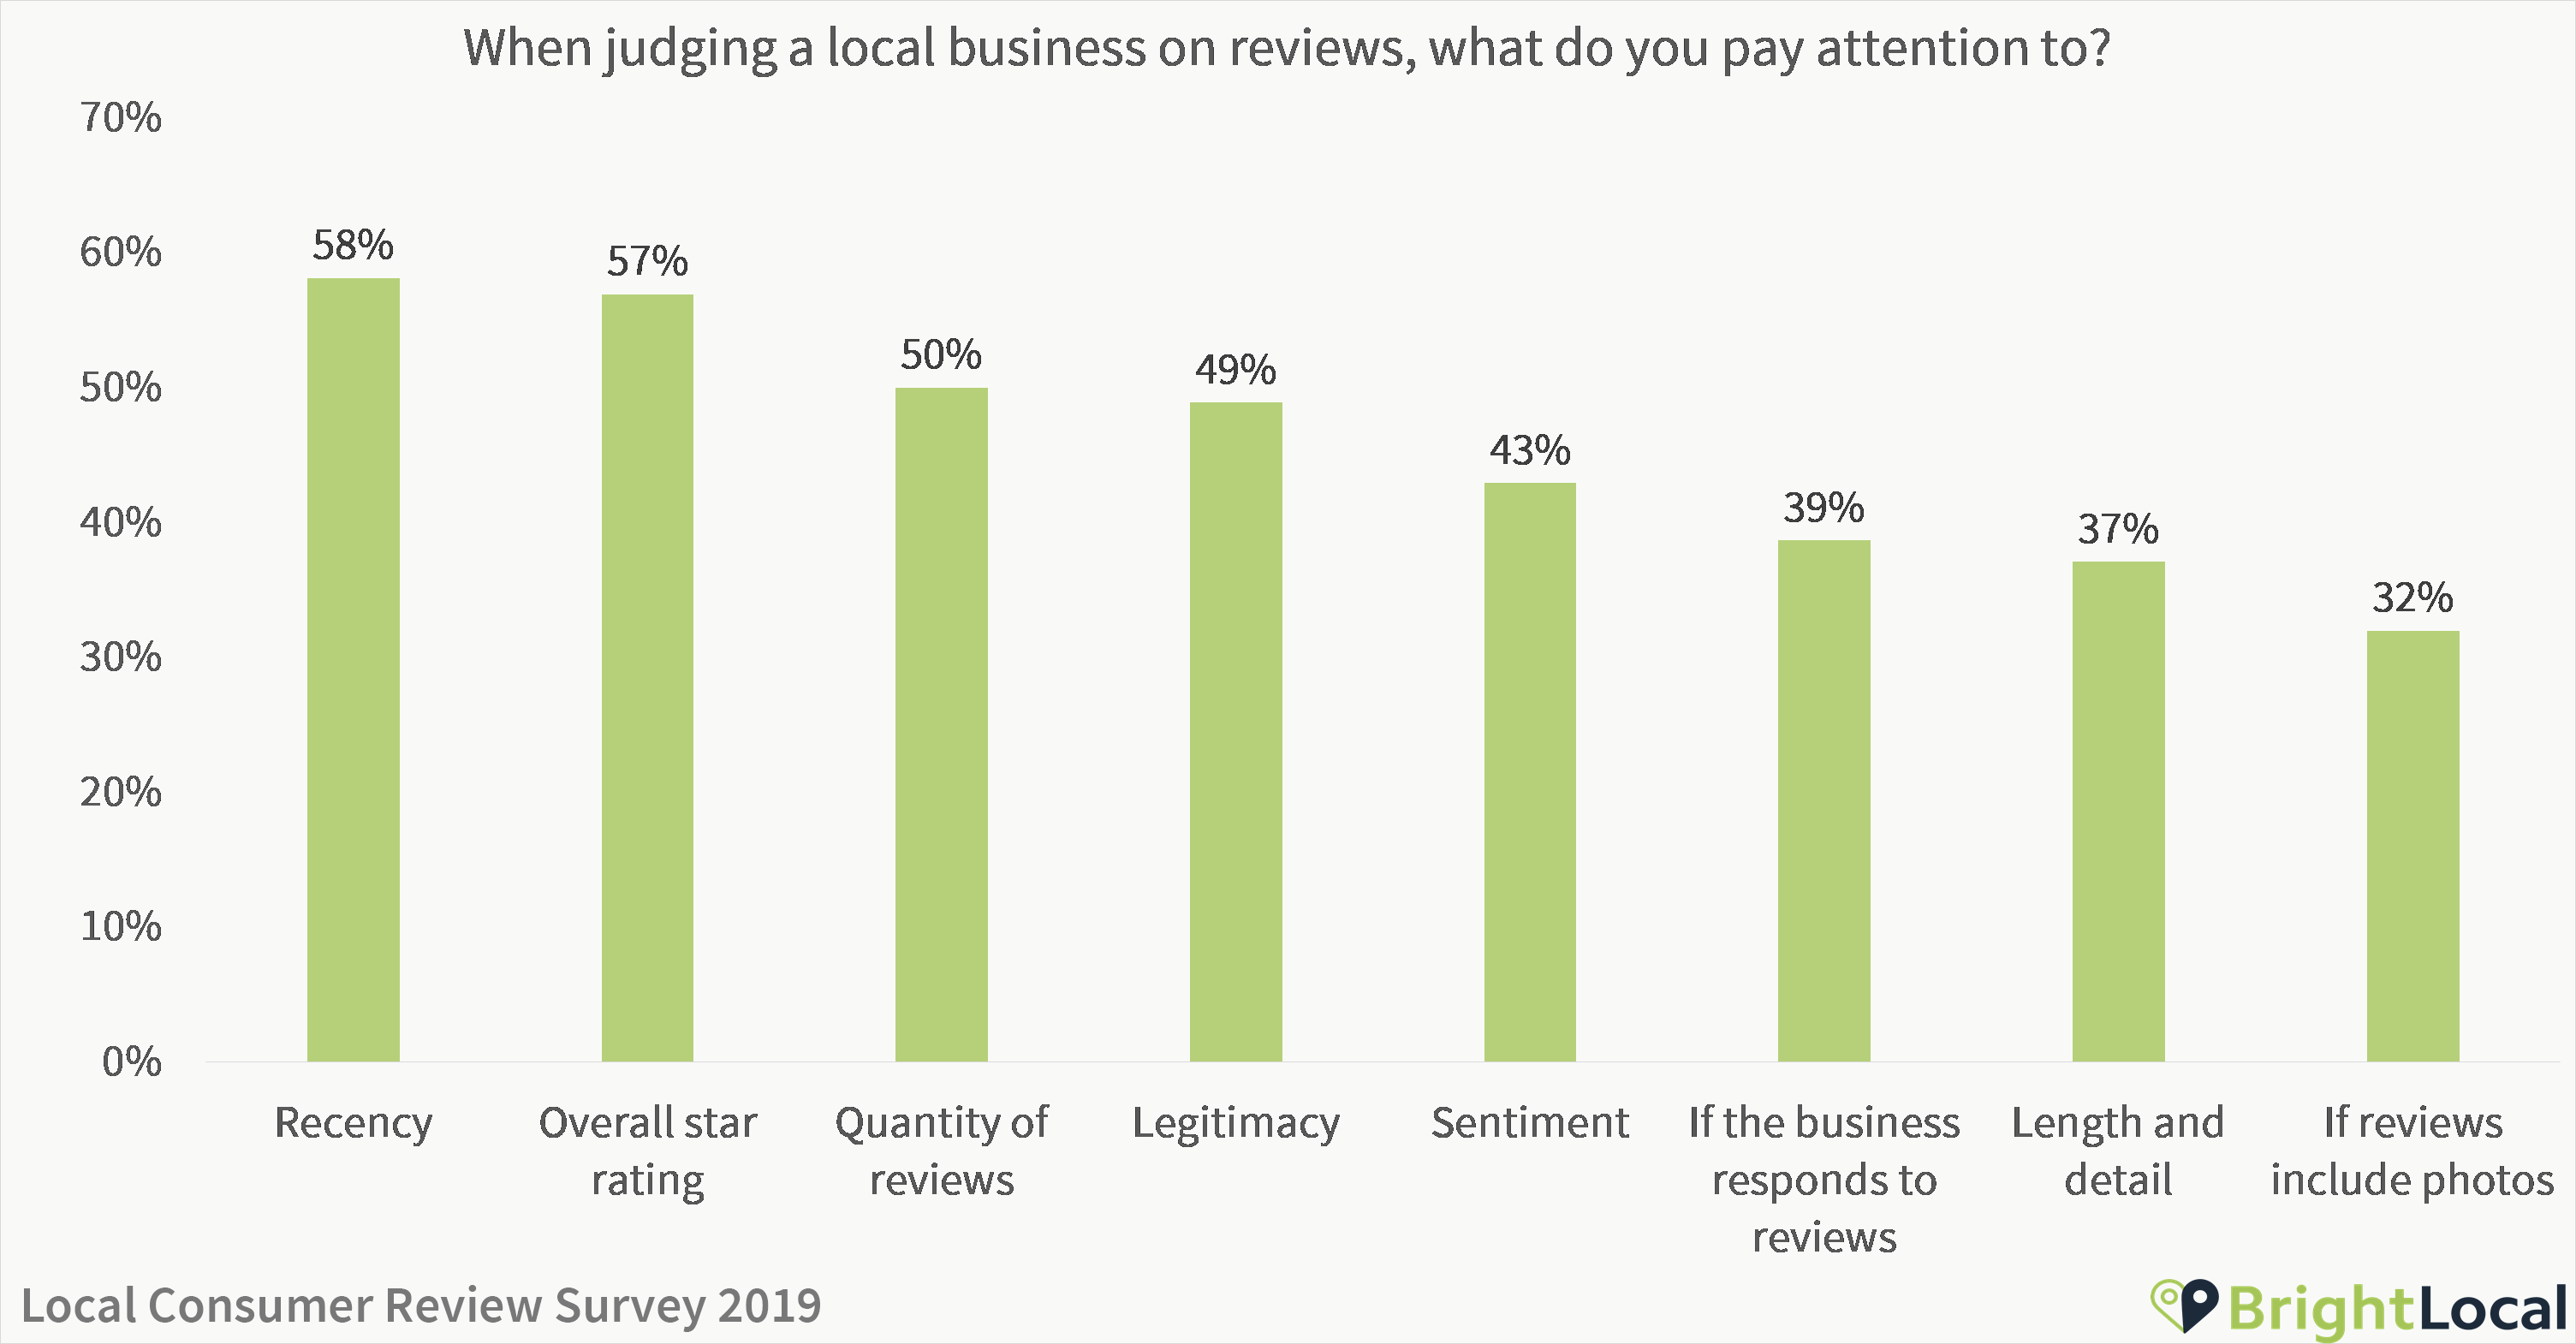 What do you pay attention to in reviews